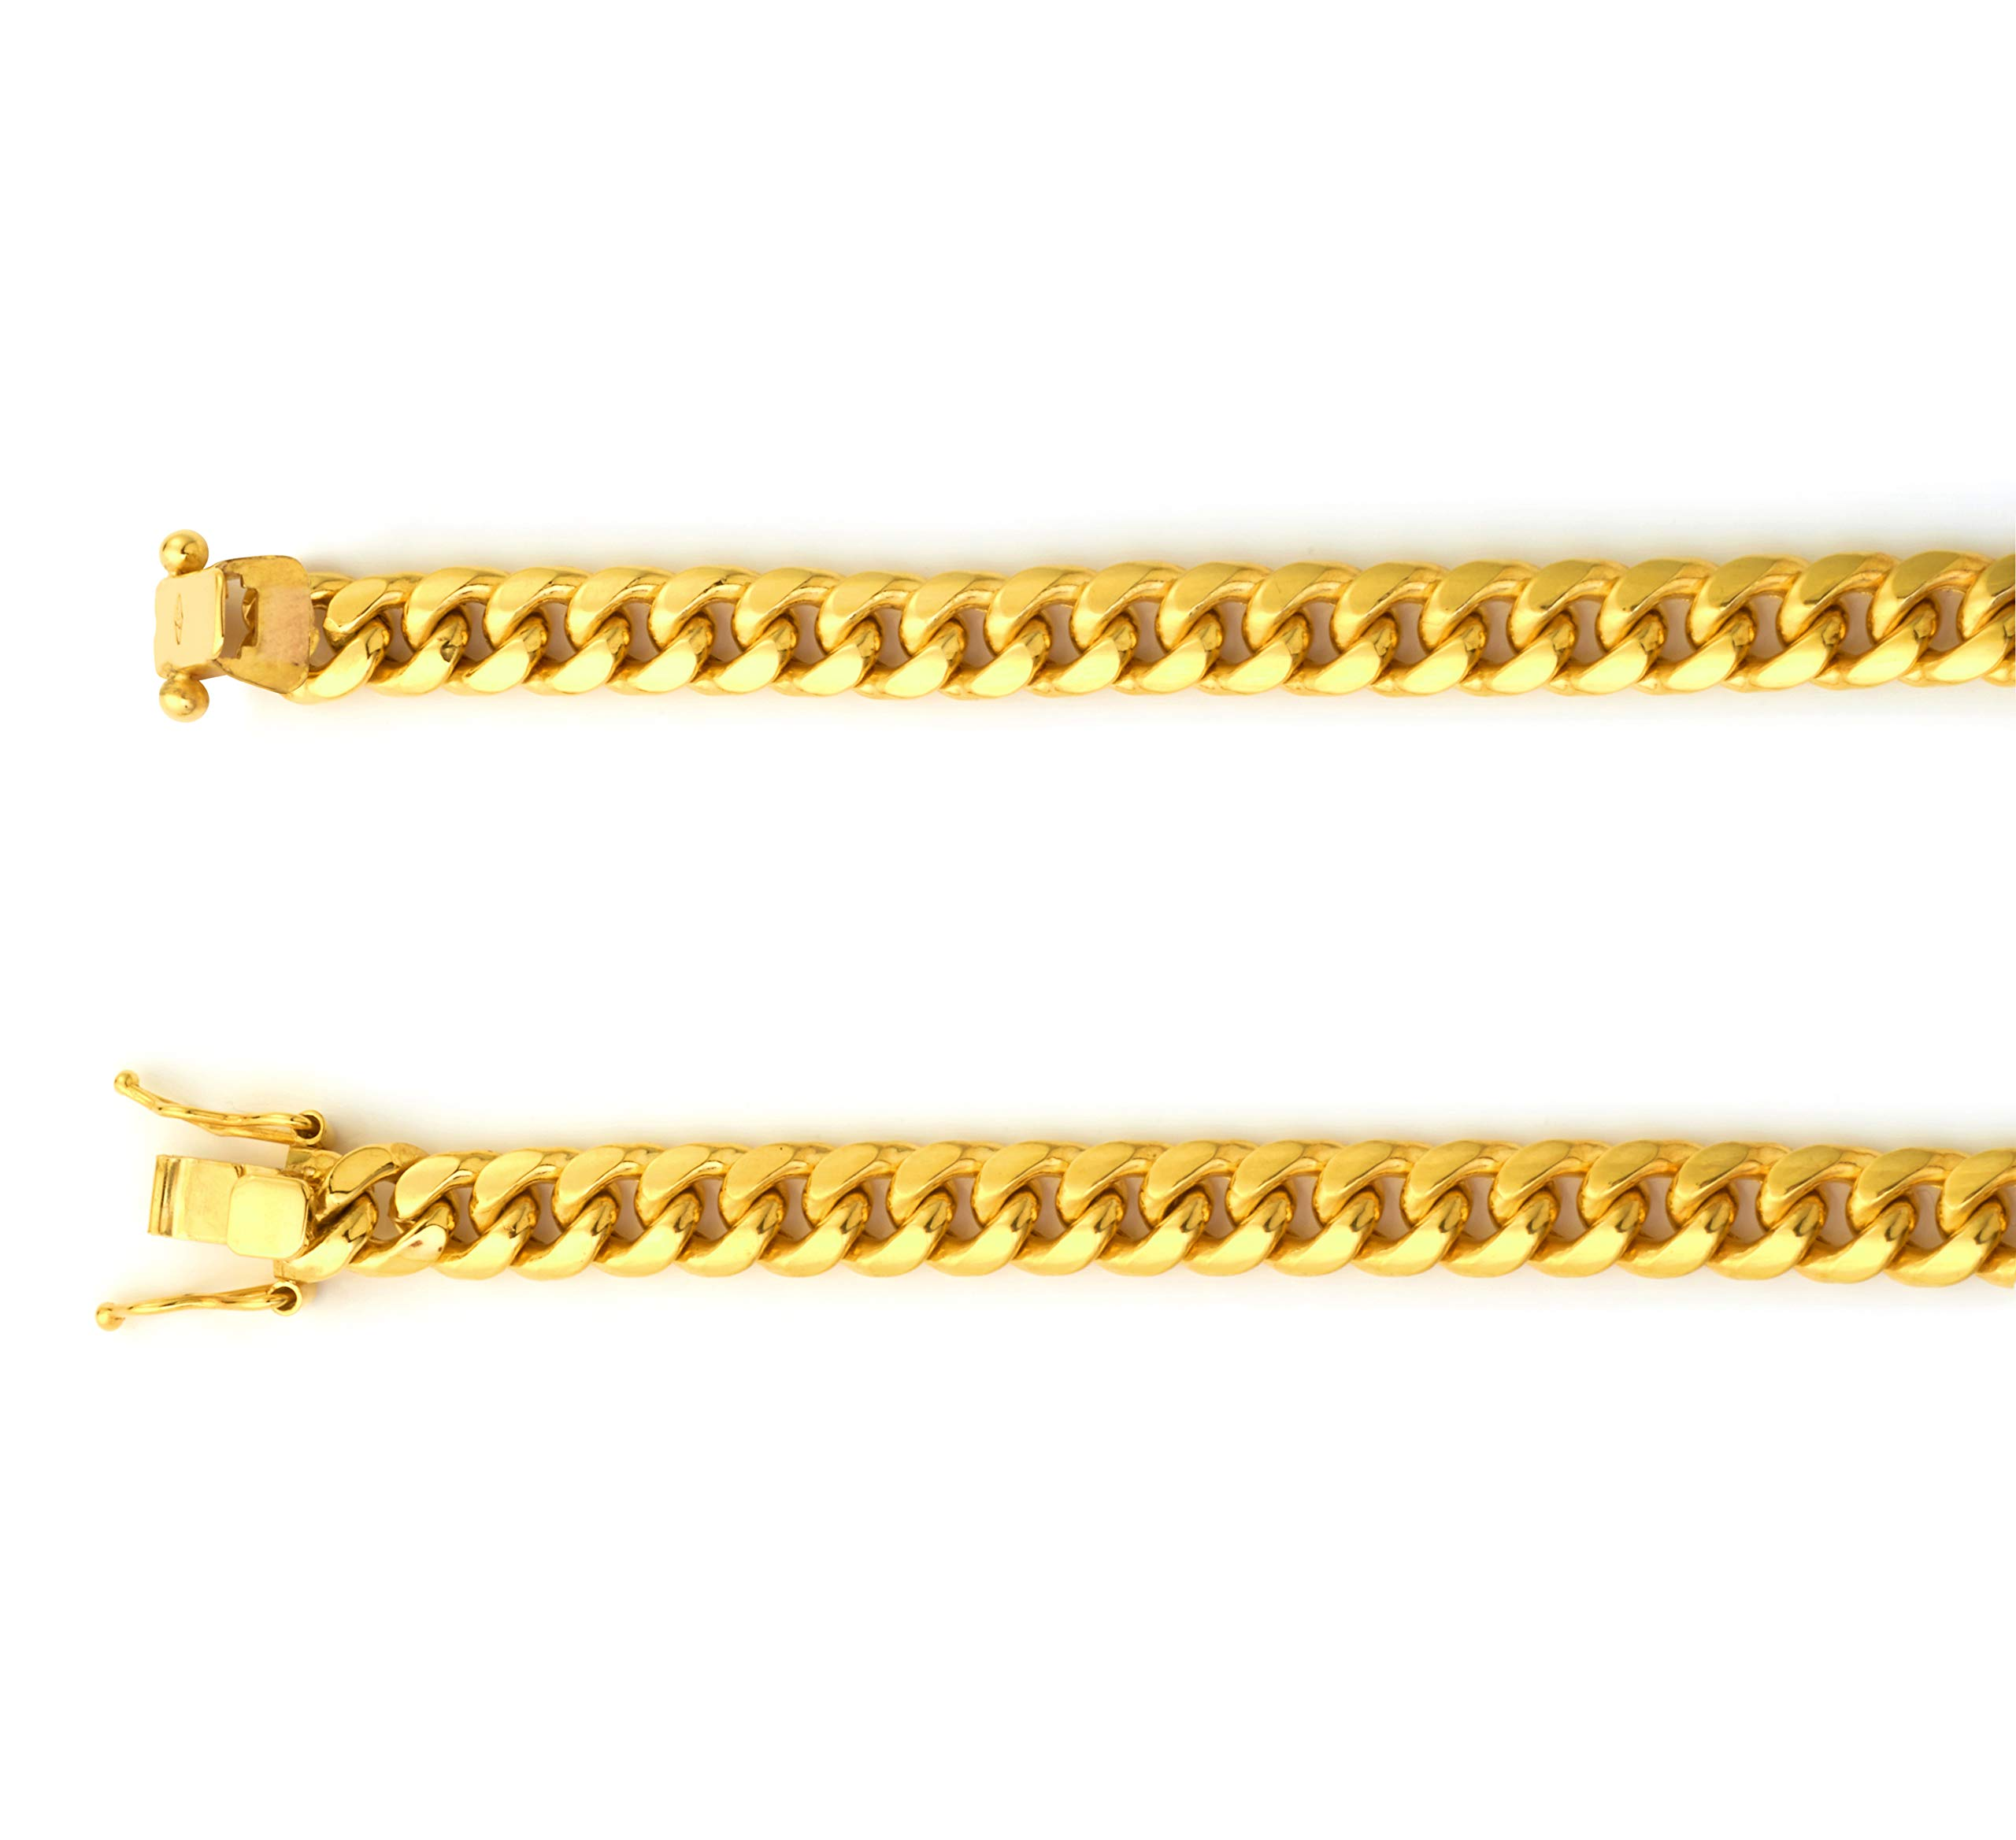 LOVEBLING 10K Yellow Gold 6mm Miami Cuban Link Chain Bracelet with Box Lock (Available in Lengths 8'', 8.5'', 9'', 10'') (9) by LOVEBLING